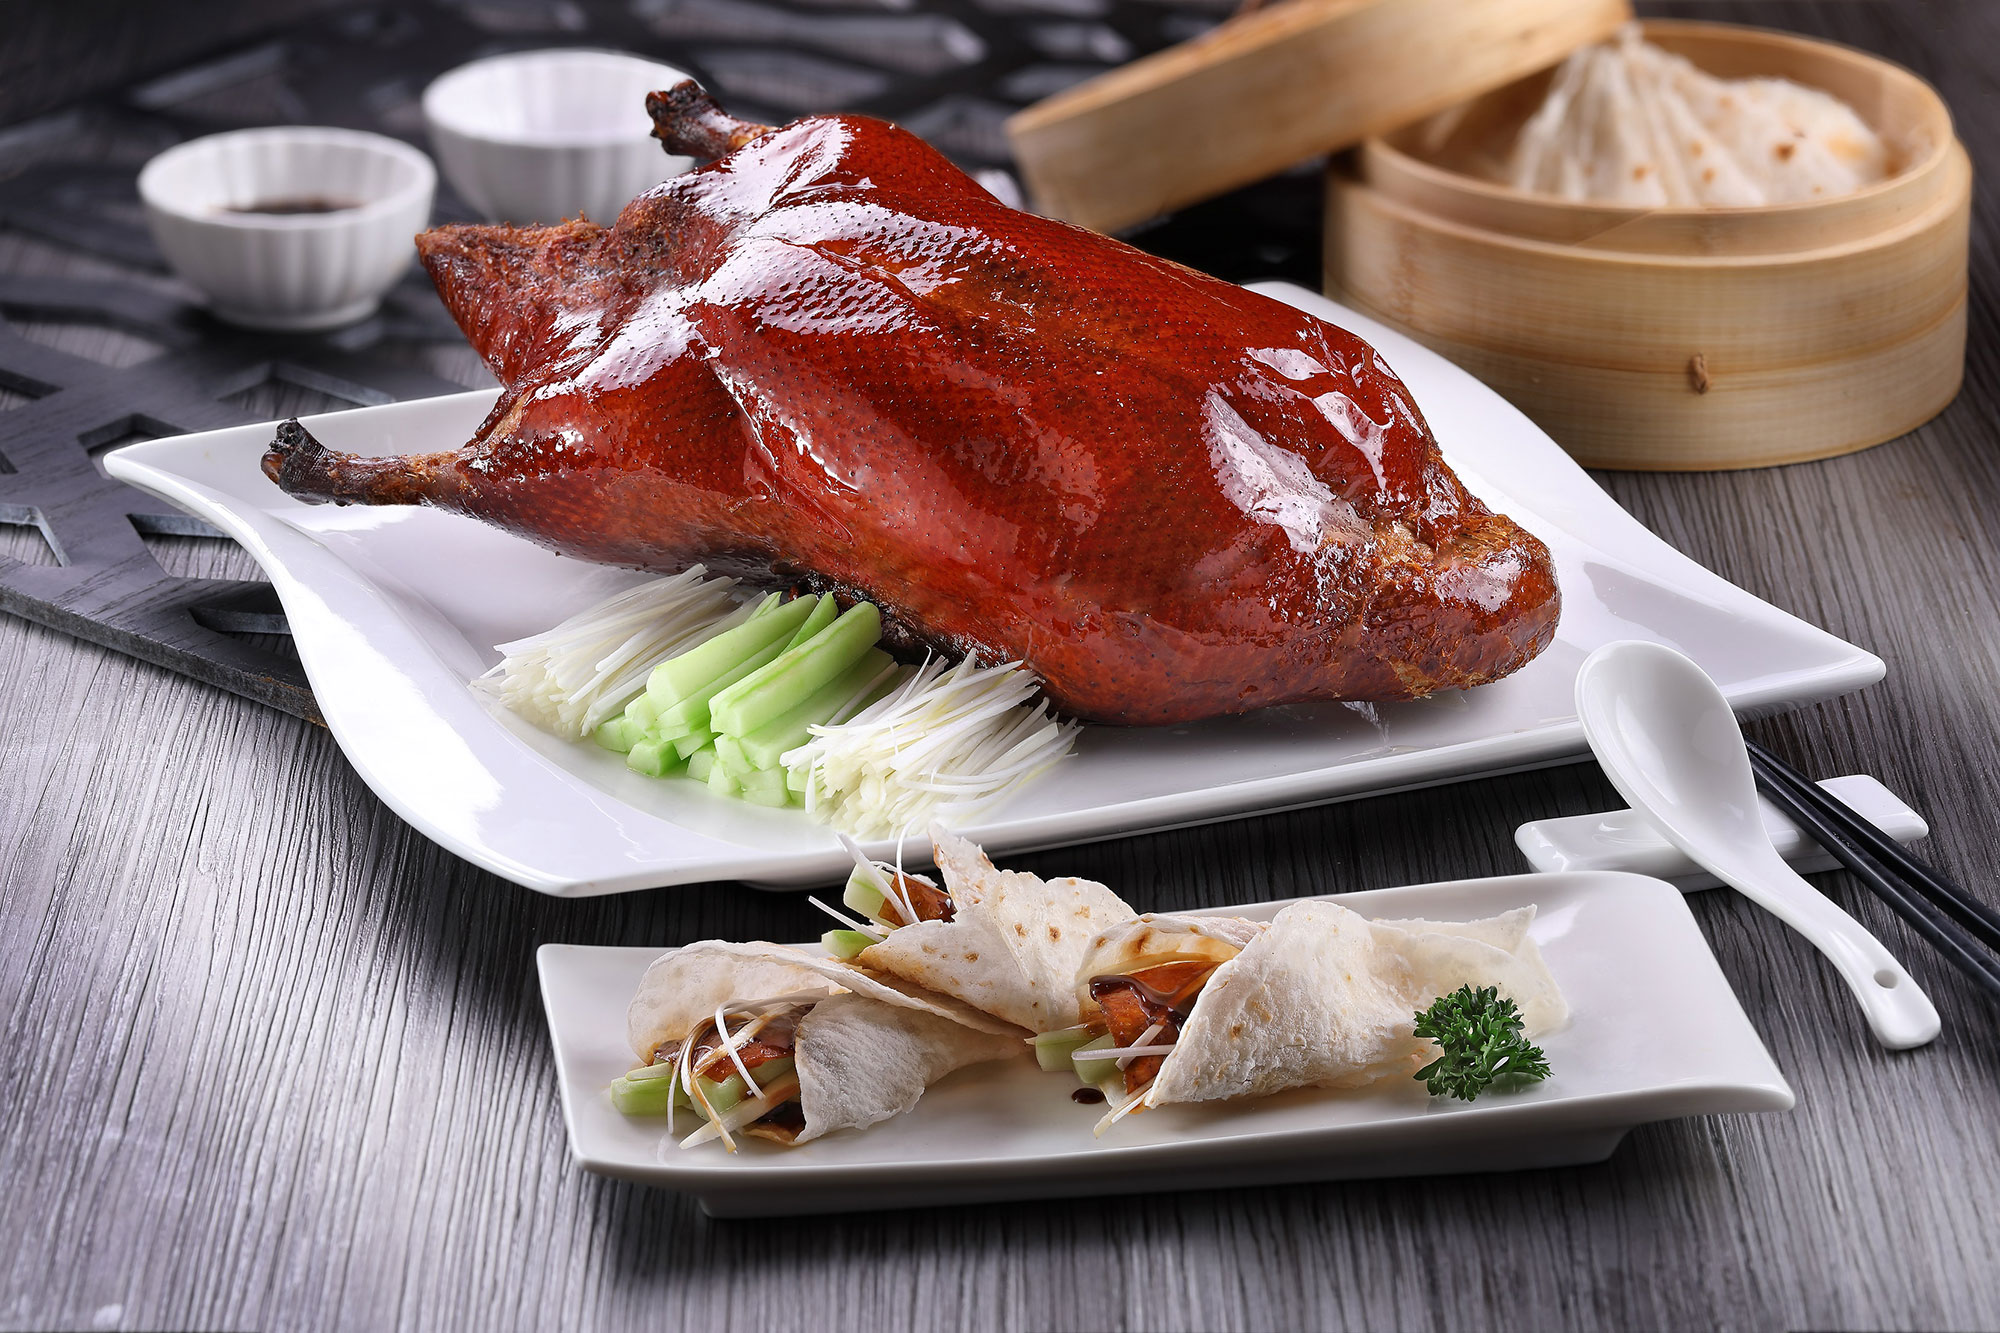 Peking duck at Imperial Treasure